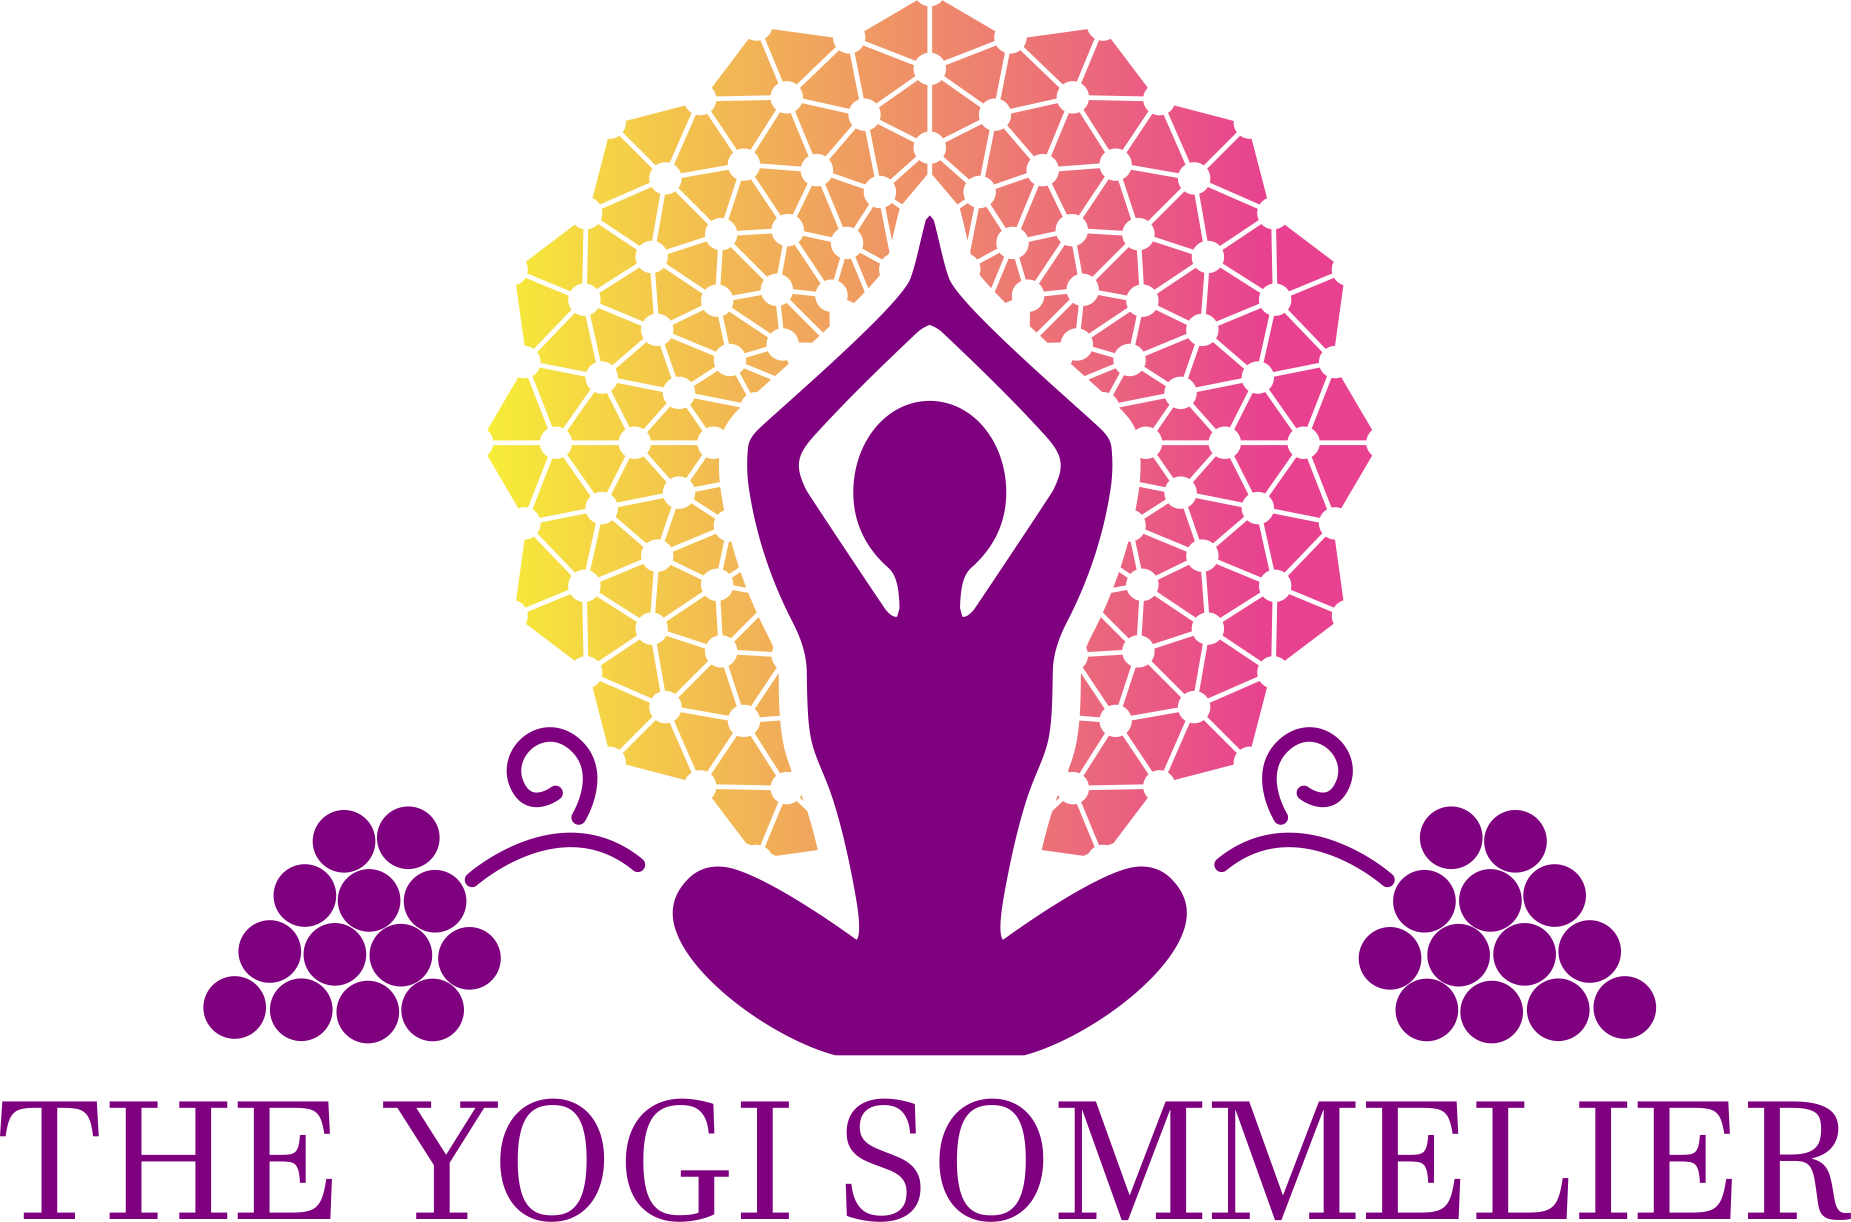 The Yogi Sommelier - Logo